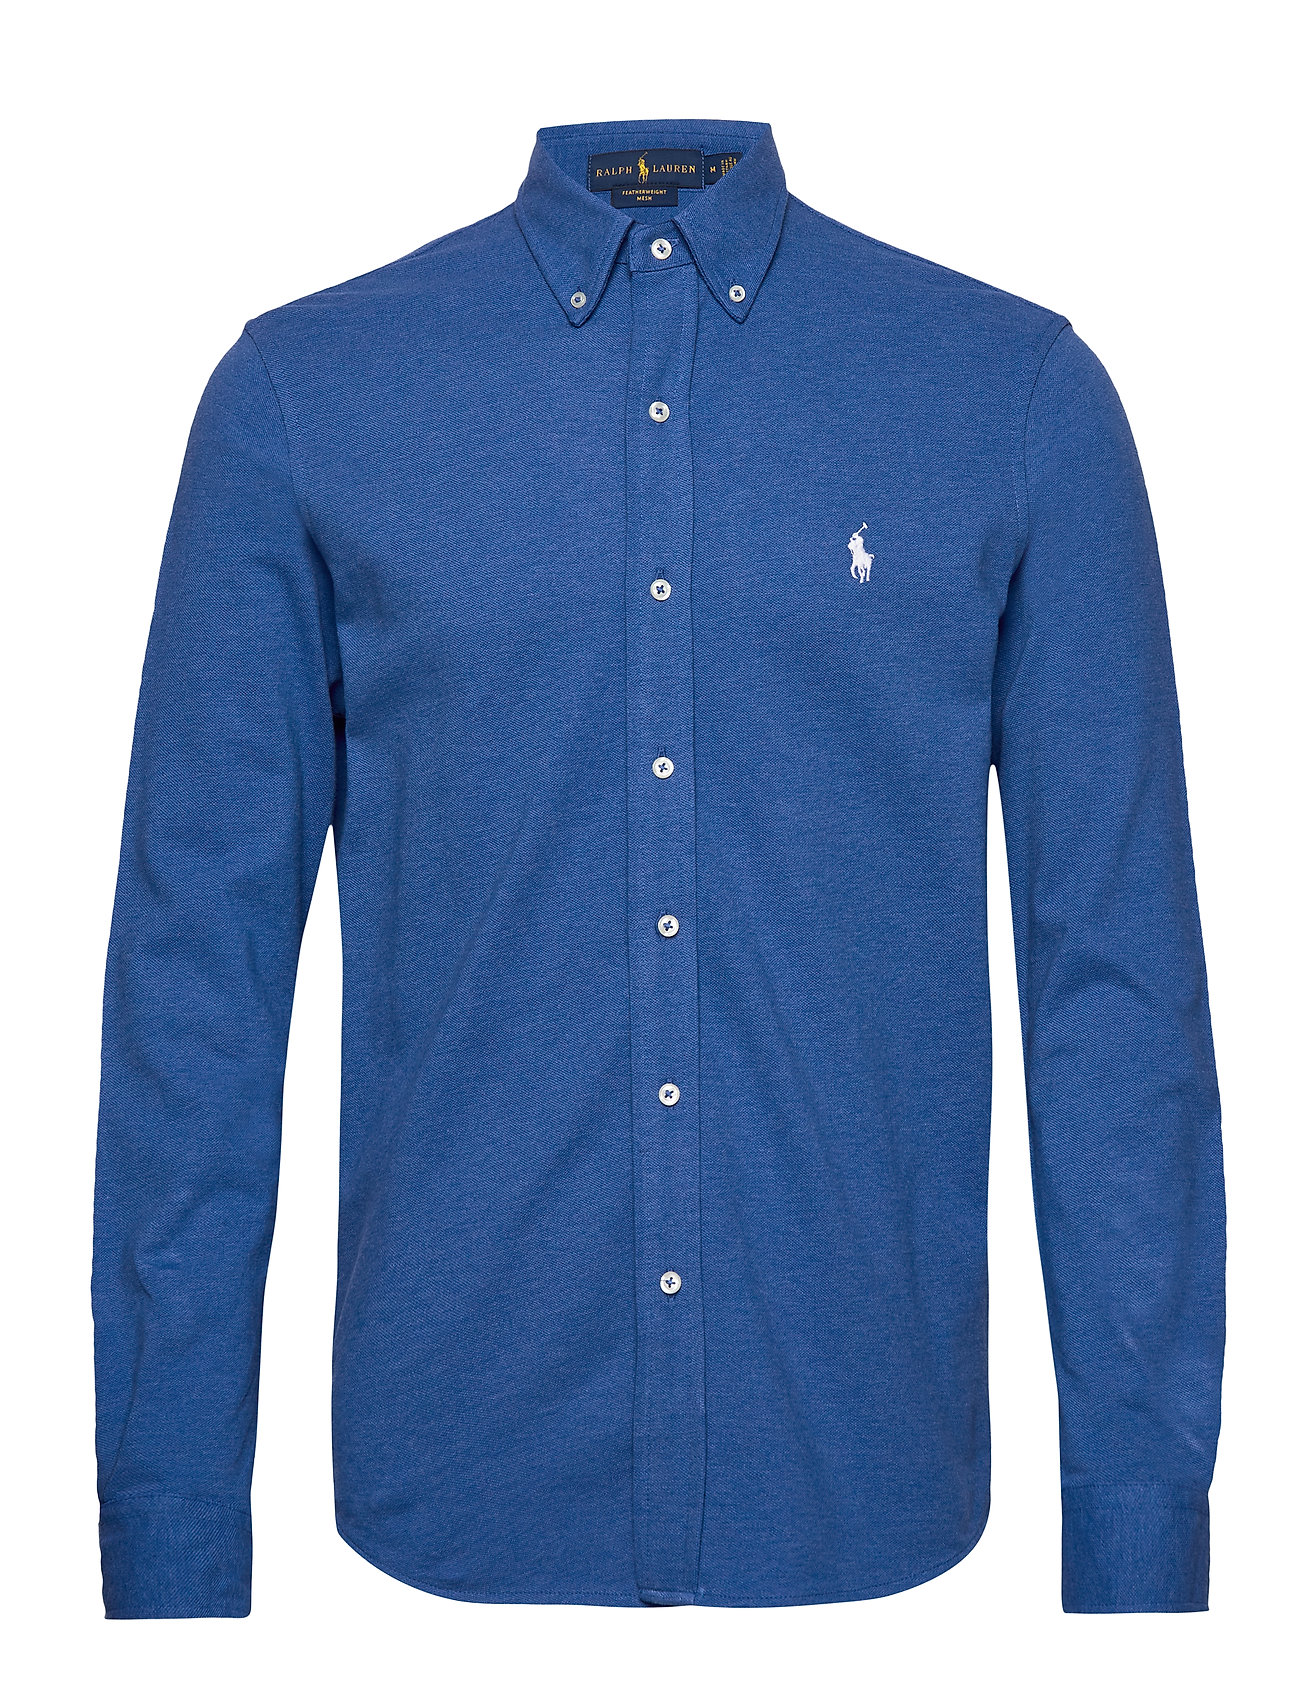 Polo Ralph Lauren Featherweight Mesh Shirt - DOCKSIDE BLUE HEA